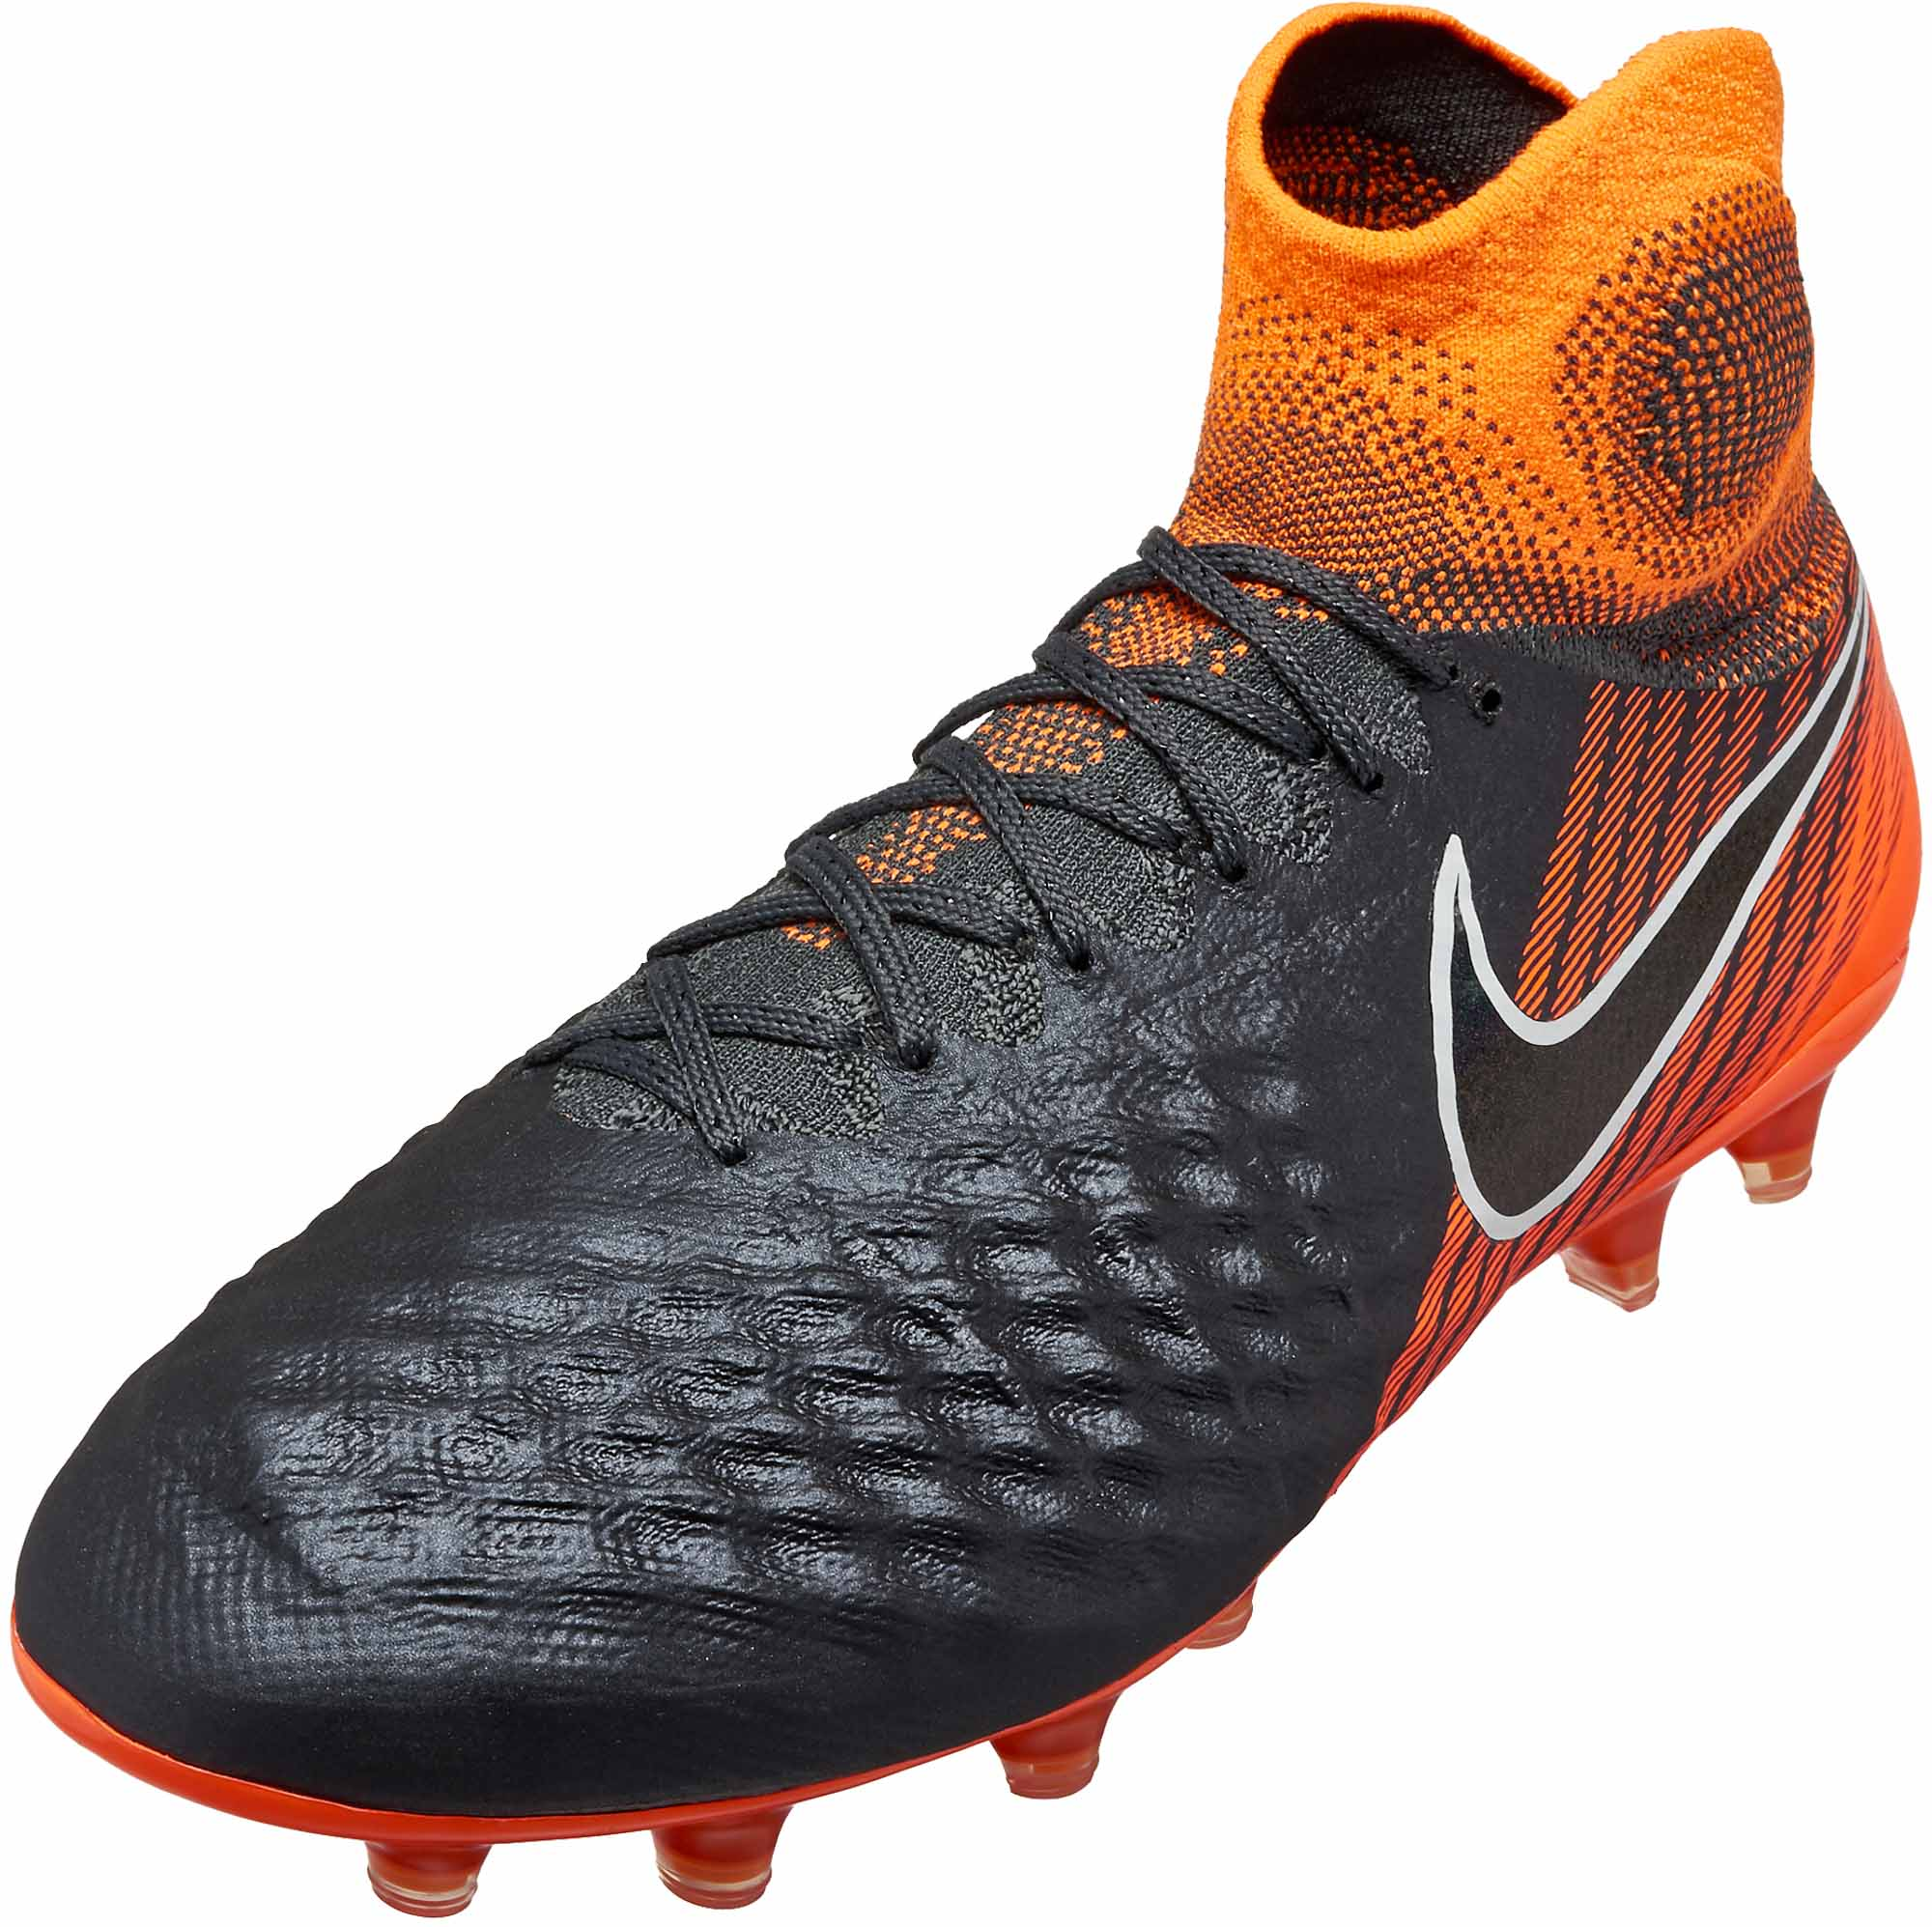 894469f24 Nike Magista Obra 2 Elite DF FG – Dark Grey Total Orange